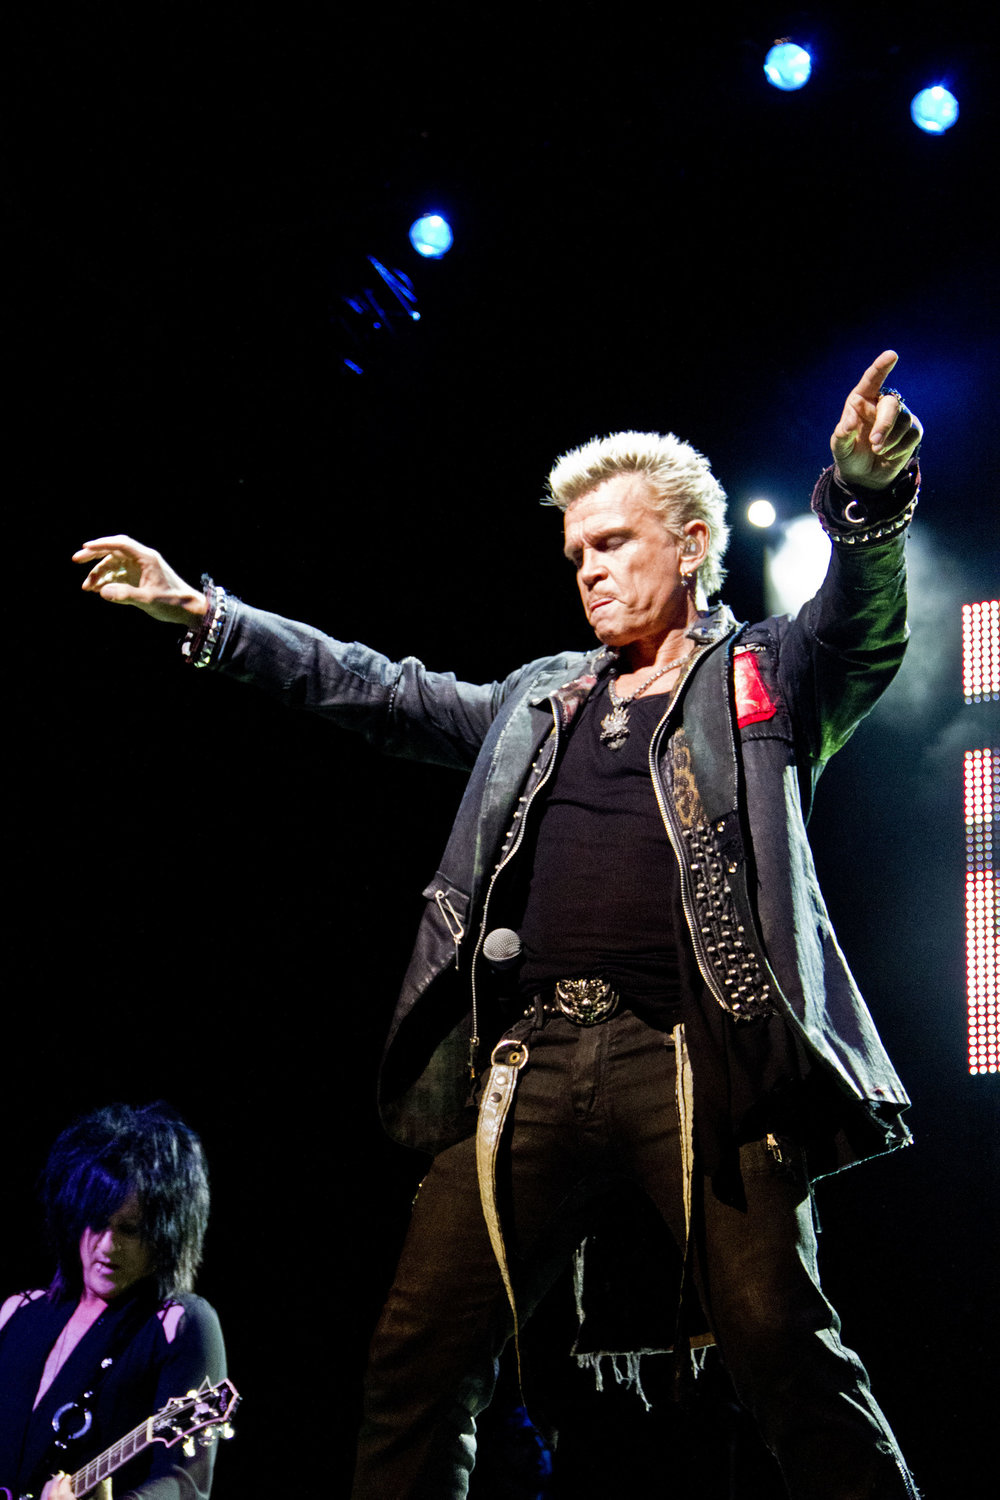 Billy_Idol_06.jpg